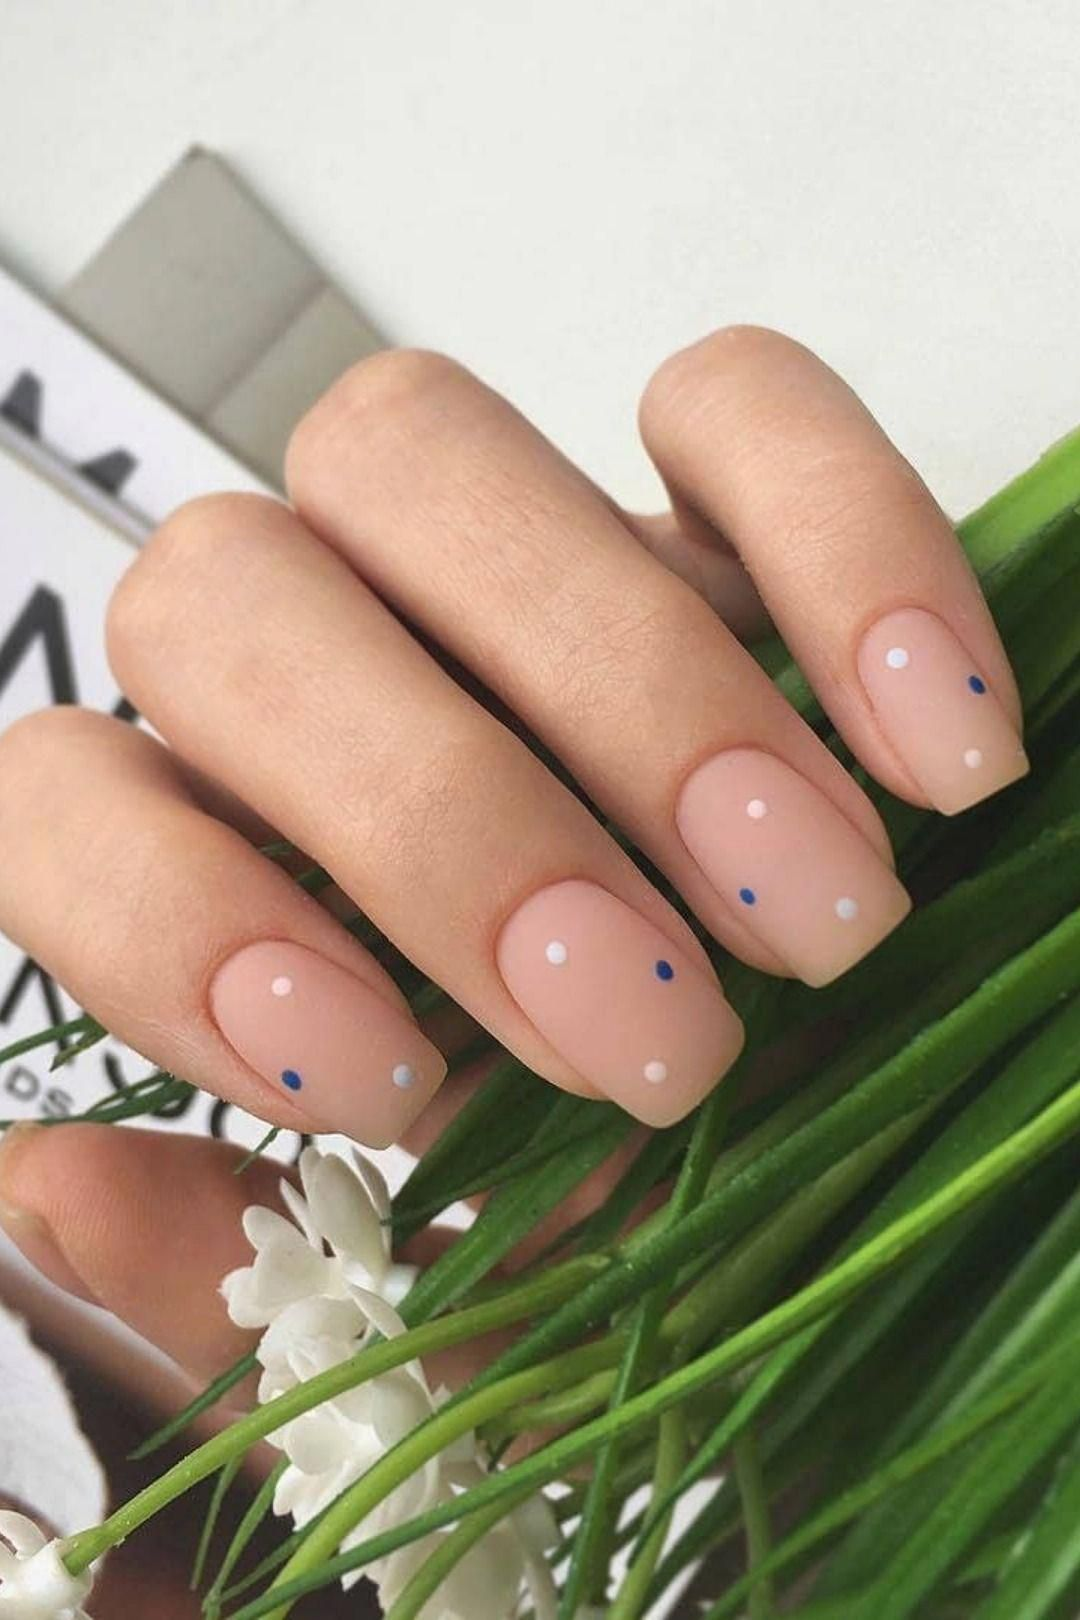 Reasons Why People Love Nail Art In 2020 With Images Sliczne